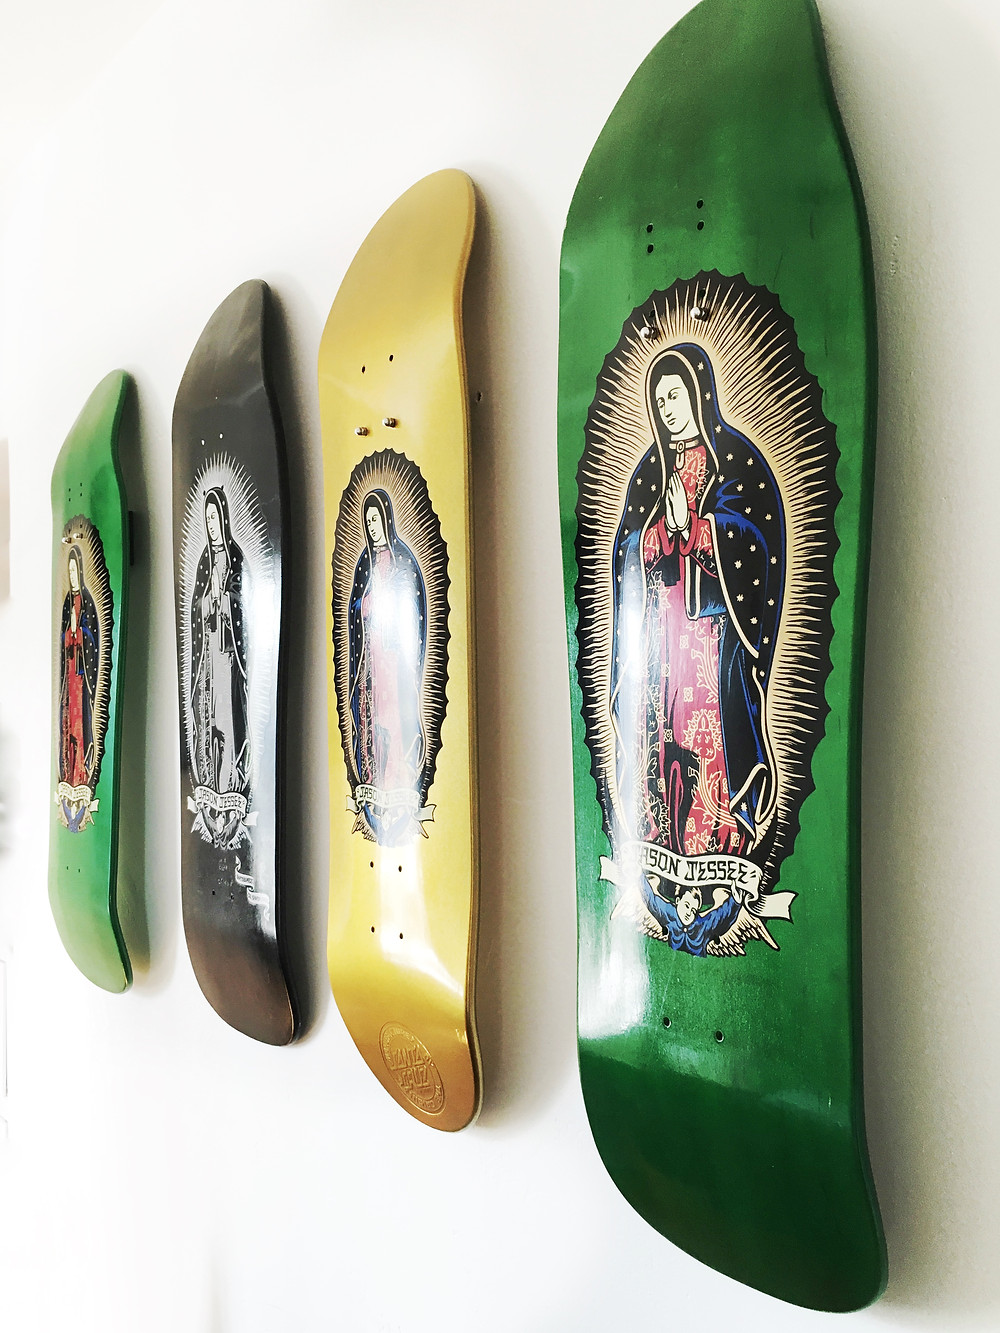 After: Skateboard decks as art